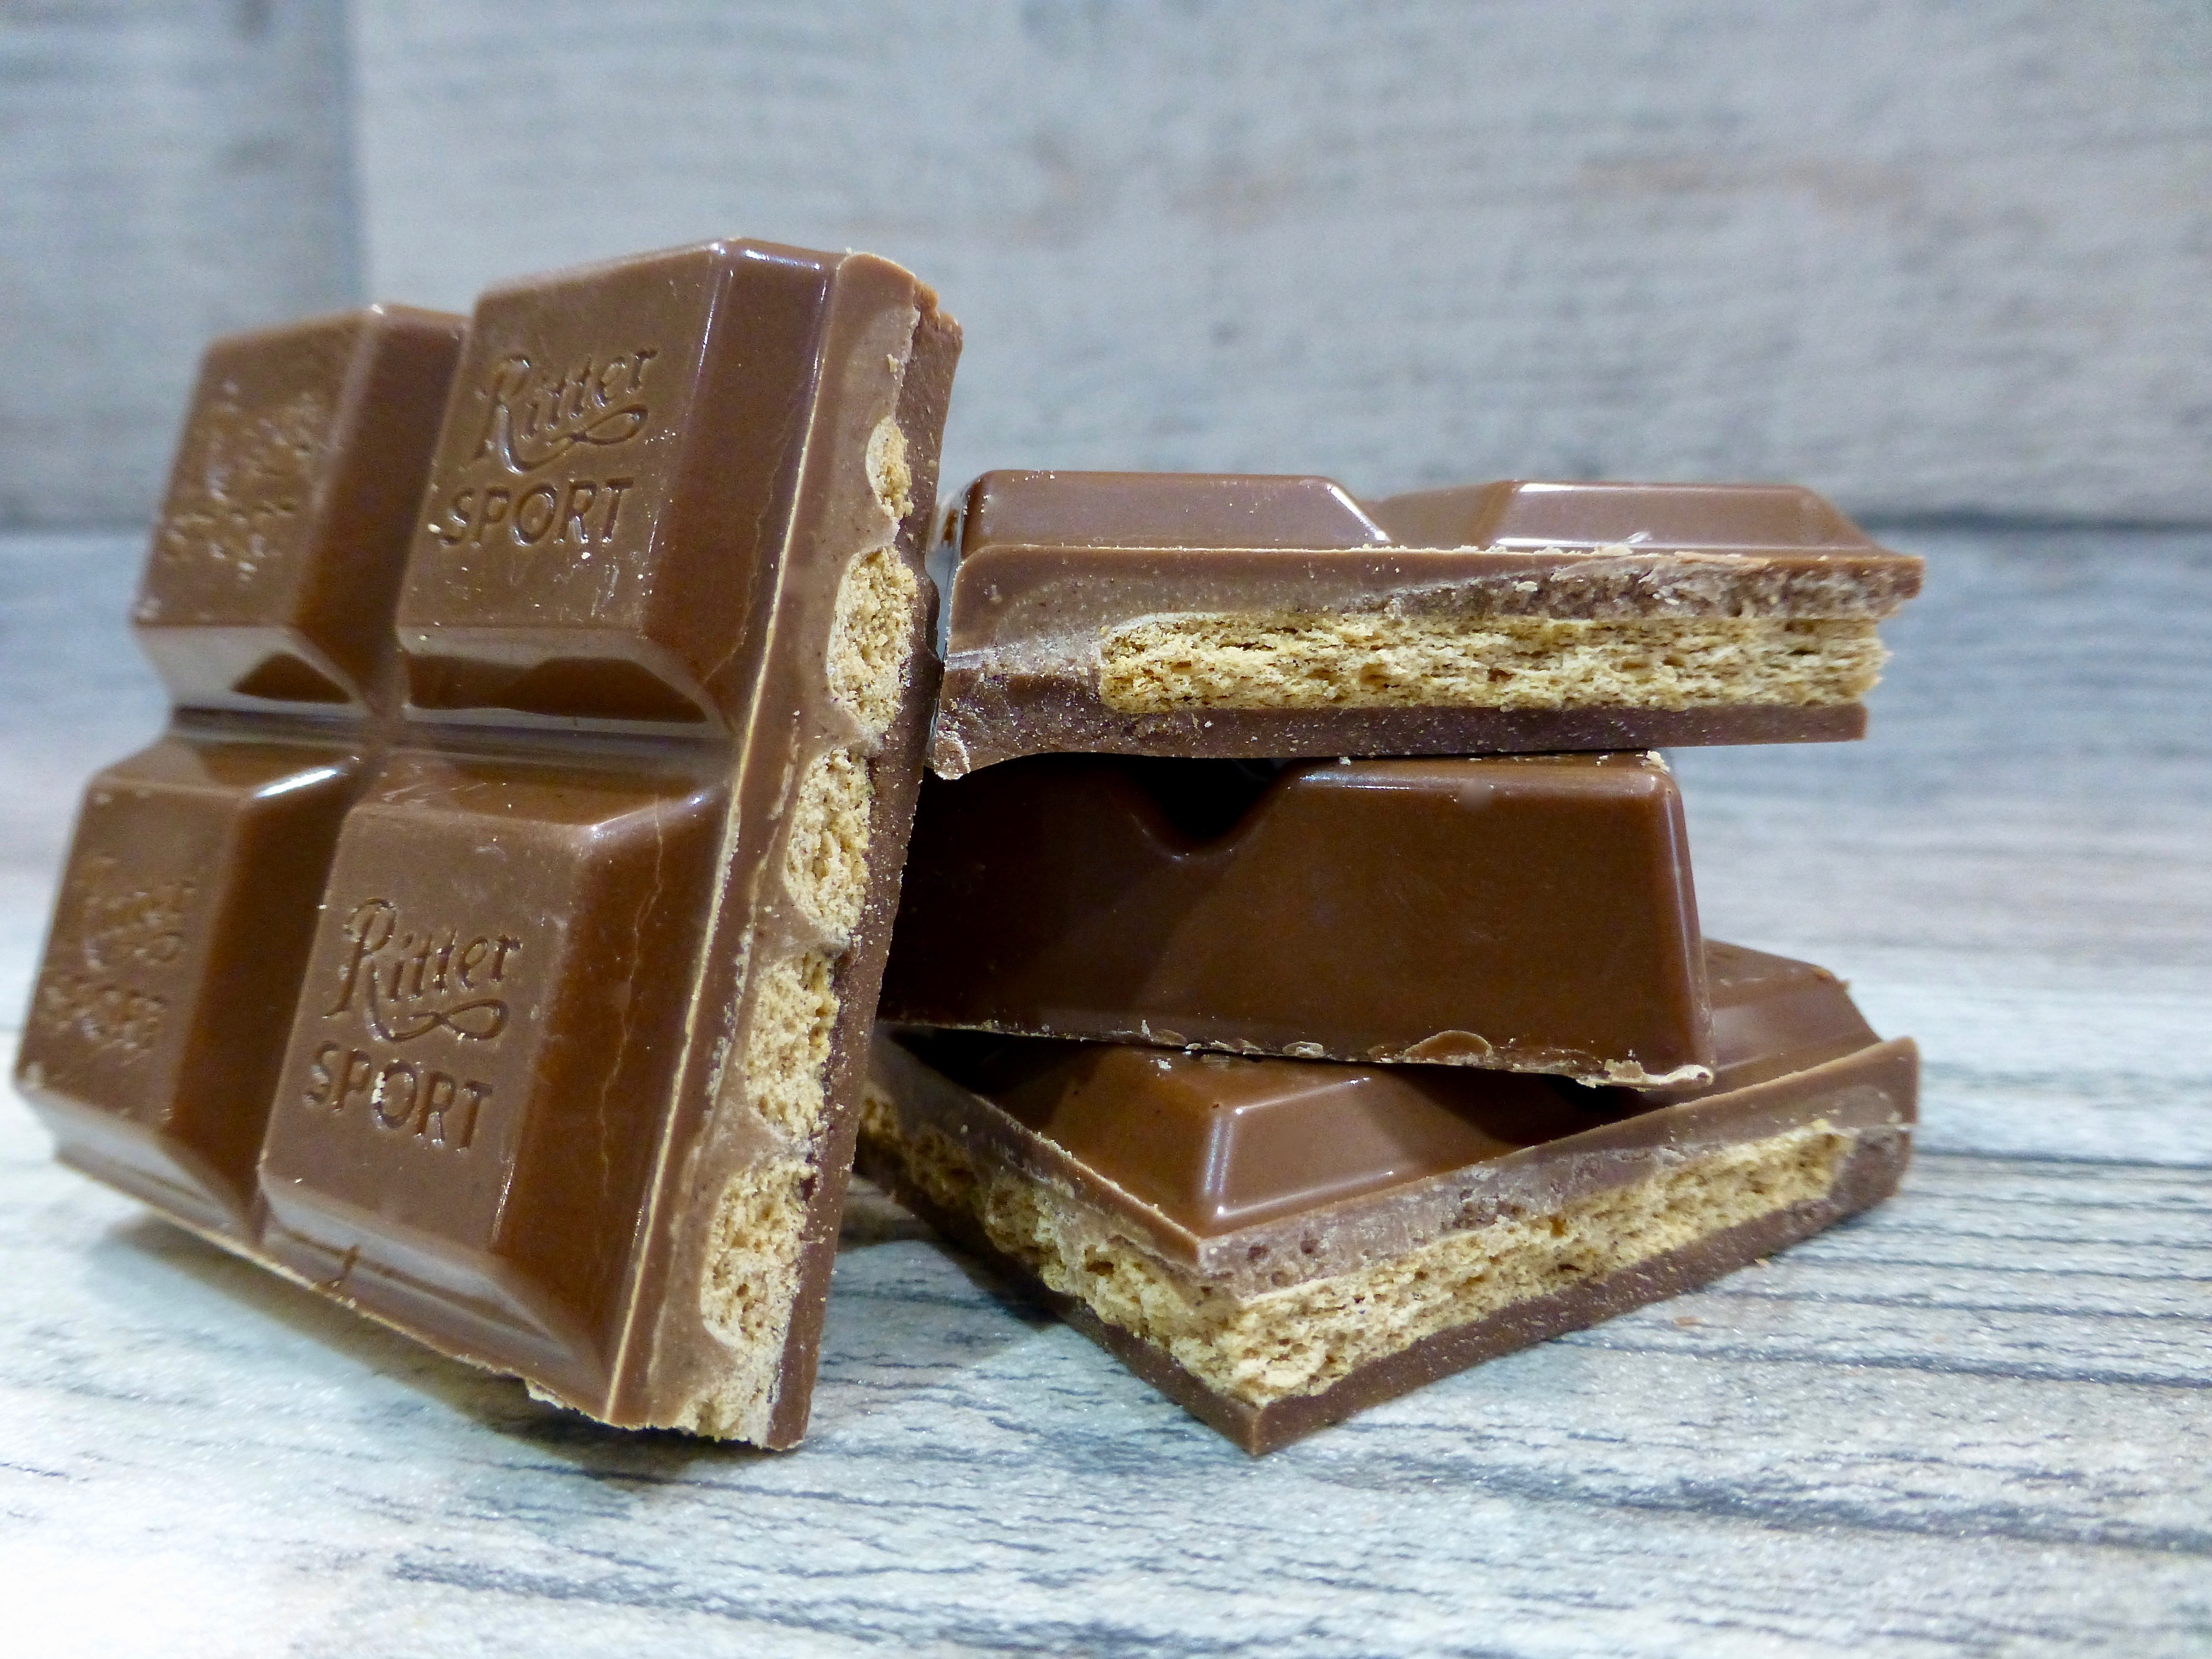 Ritter Sport Spiced Biscuit Chocolate